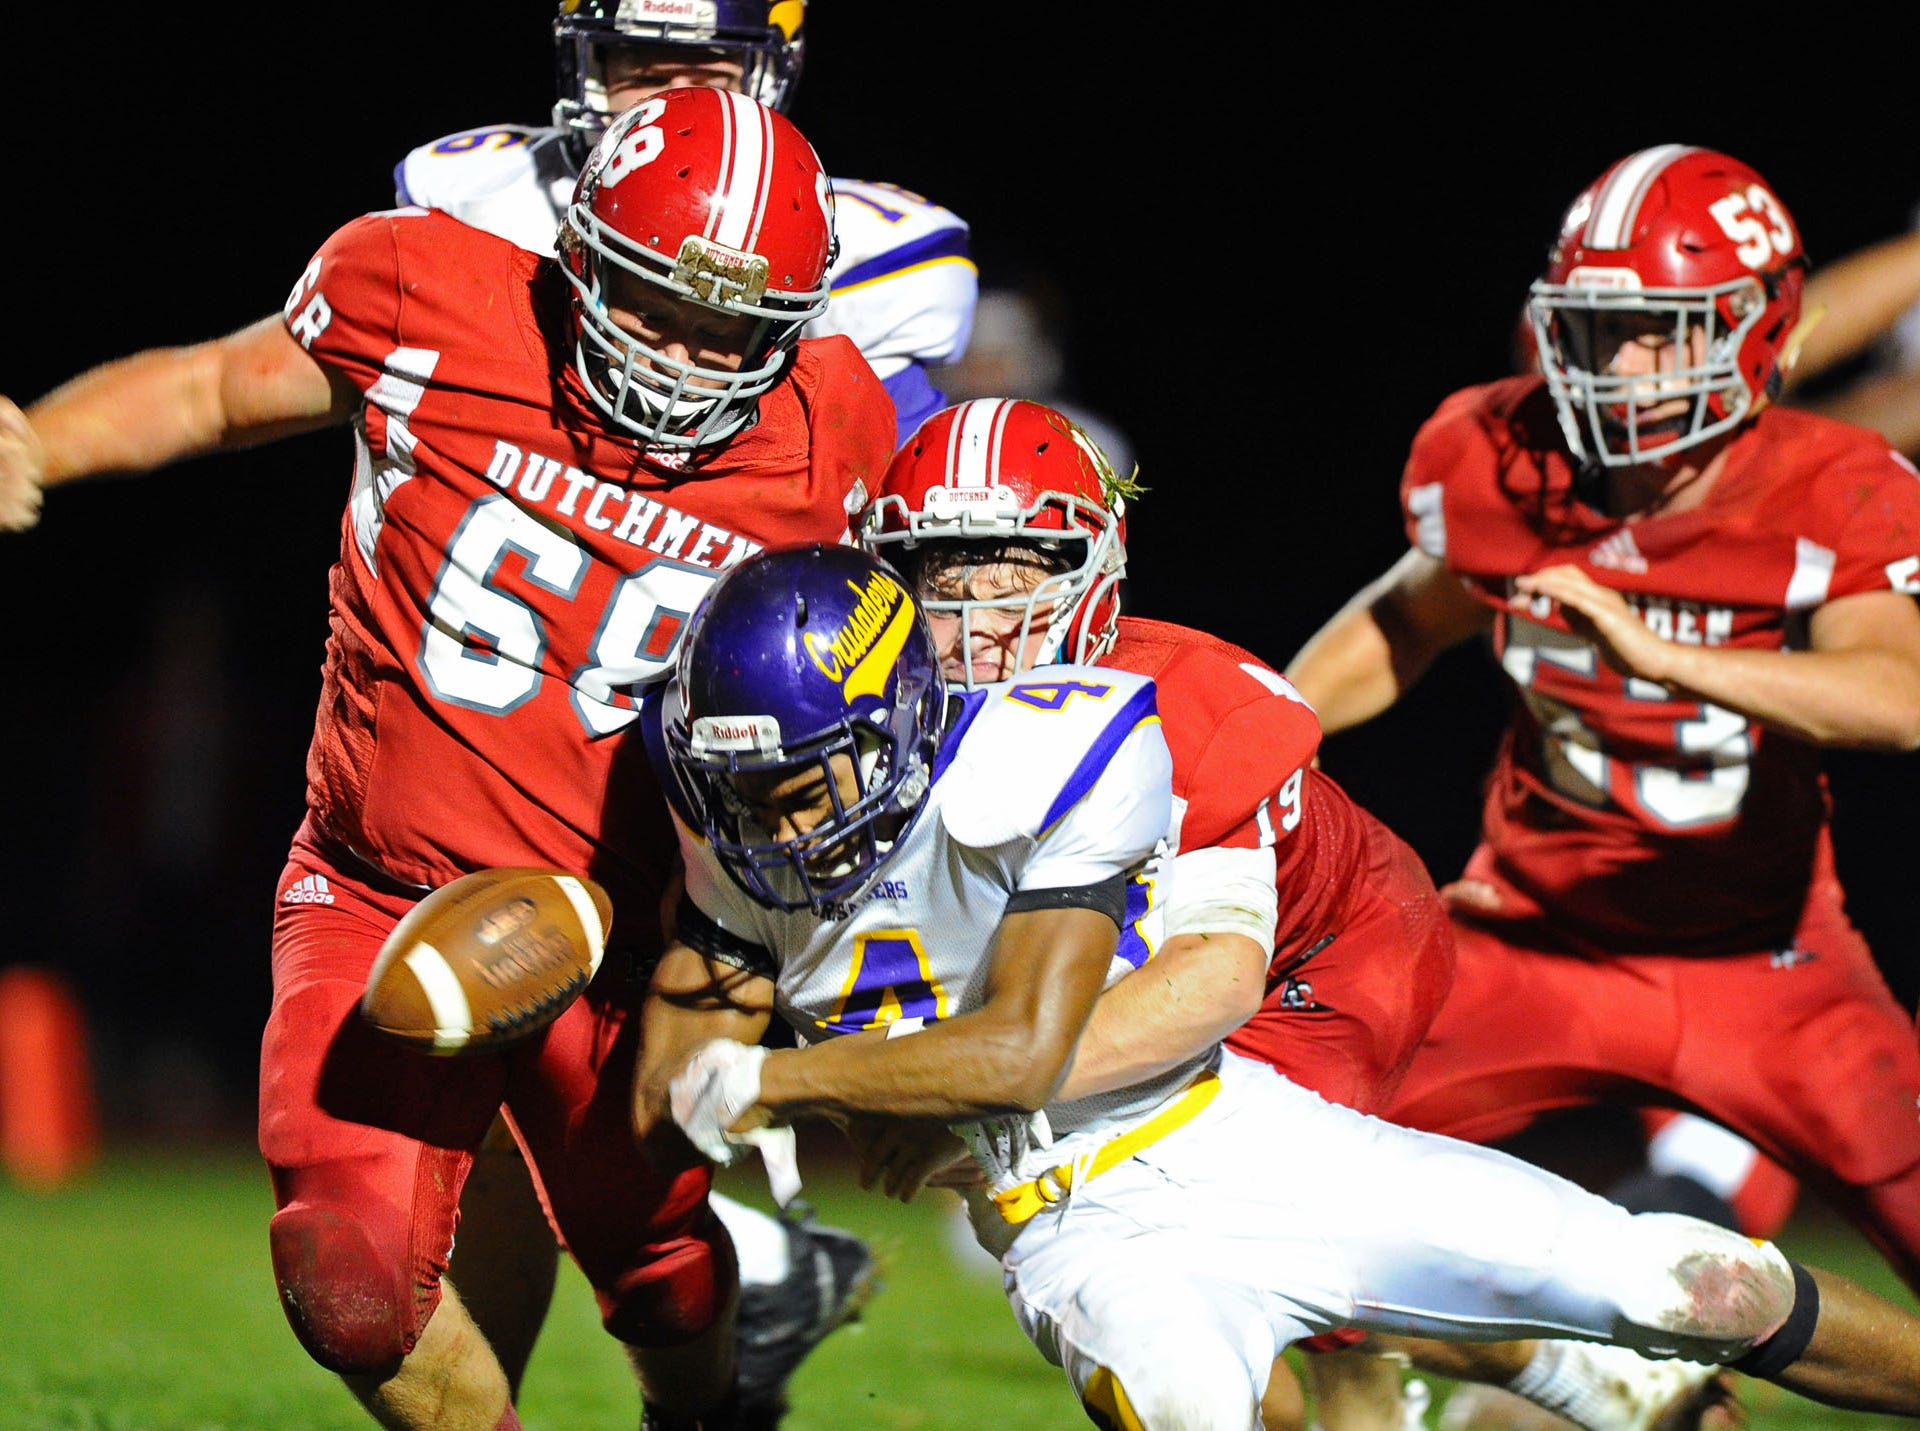 Lancaster Catholic's Malkam Lawrence (4) is stopped by Annville Cleona's Daniel Tobias (19) on this 2nd and goal play during the 1st quarter of Friday night's game against Lancaster Catholic.